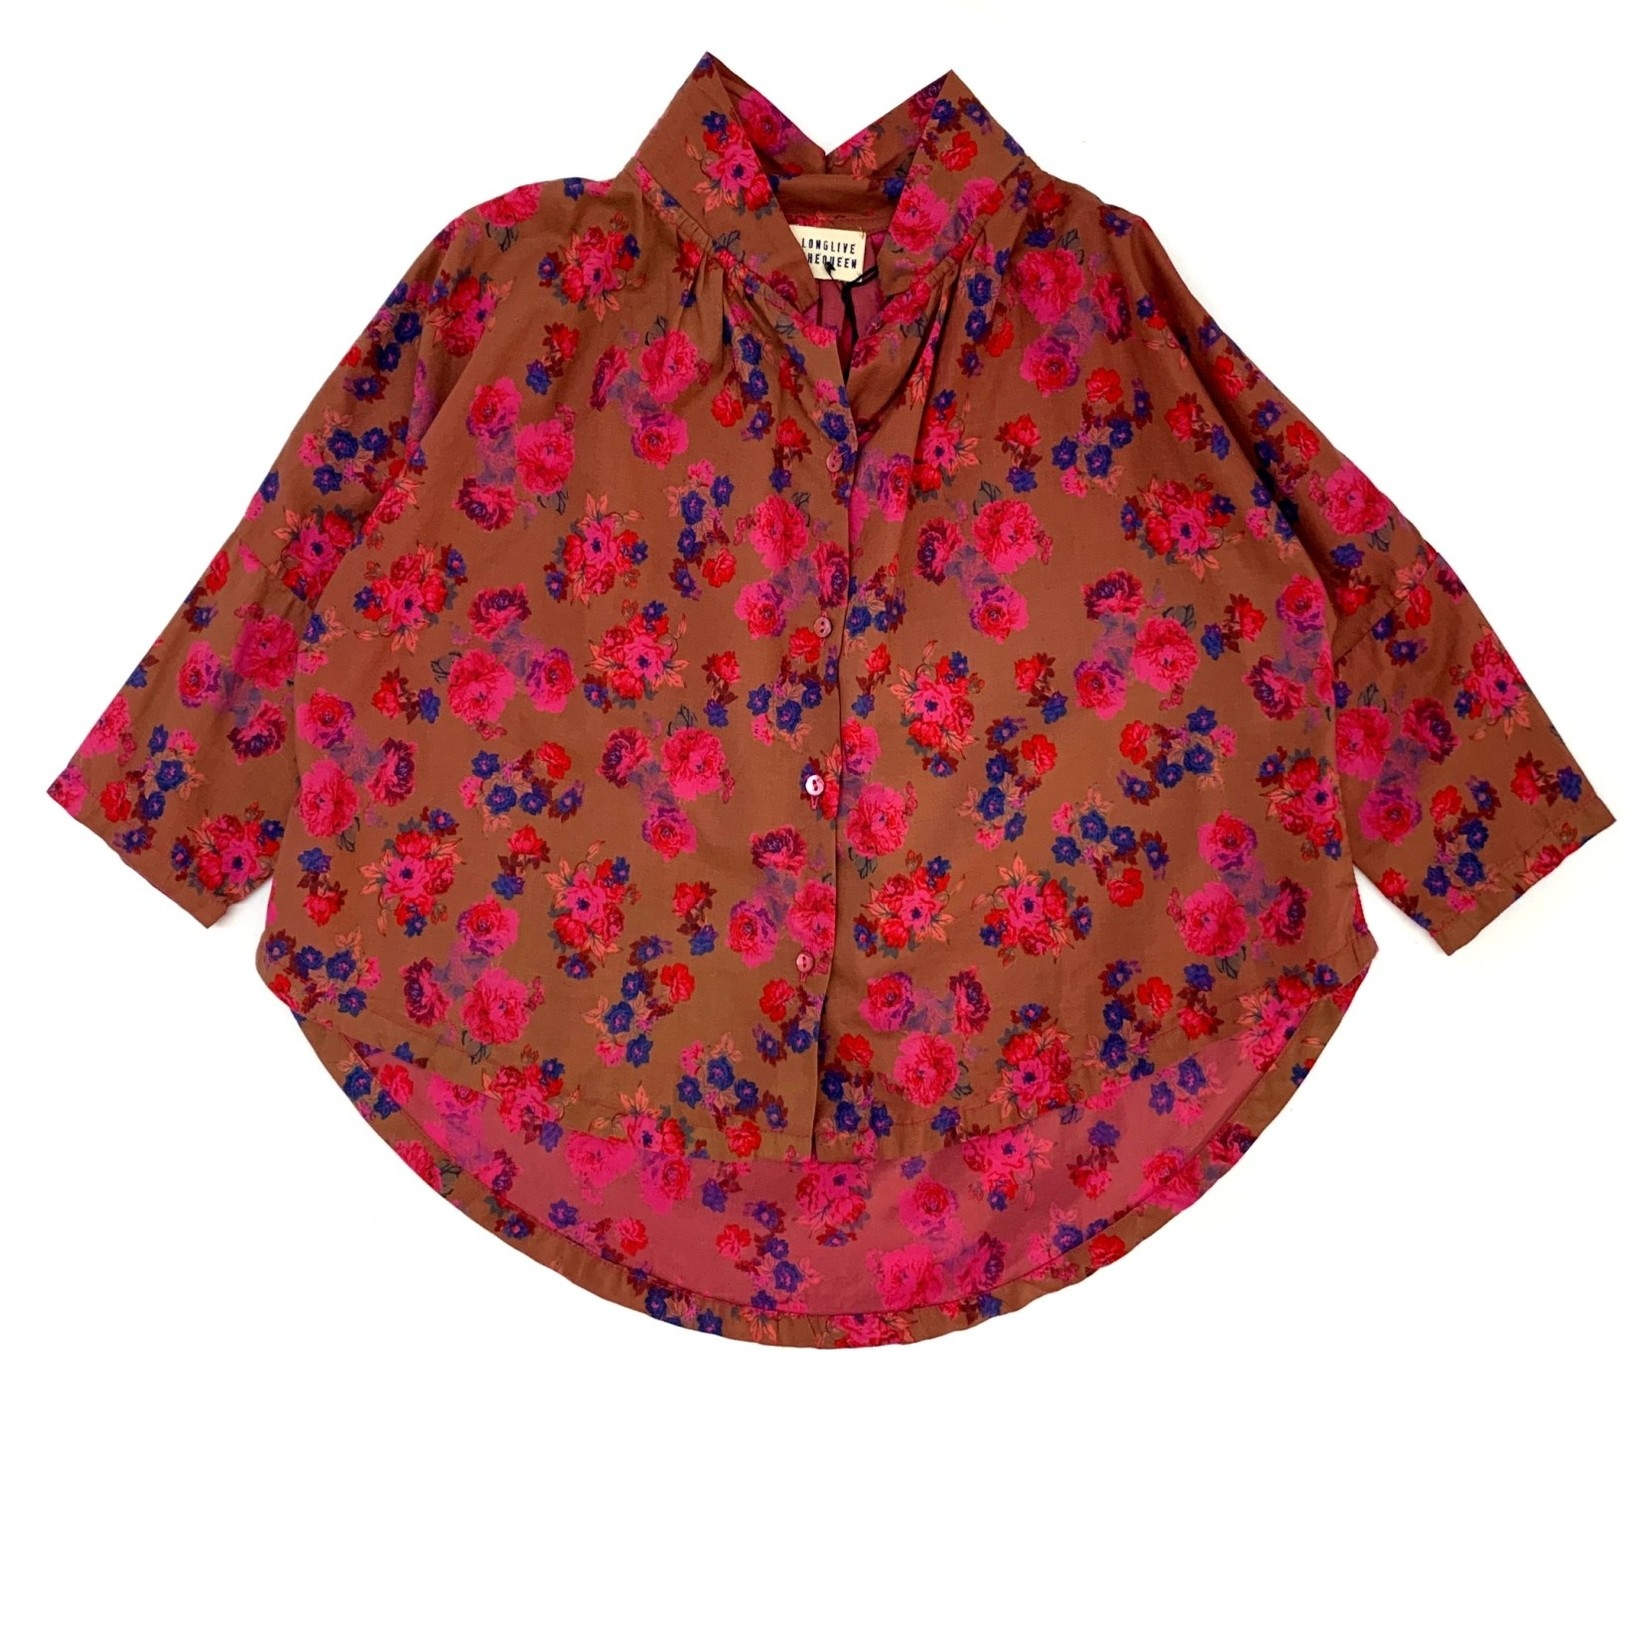 LONG LIVE THE QUEEN Long live the queen collar blouse